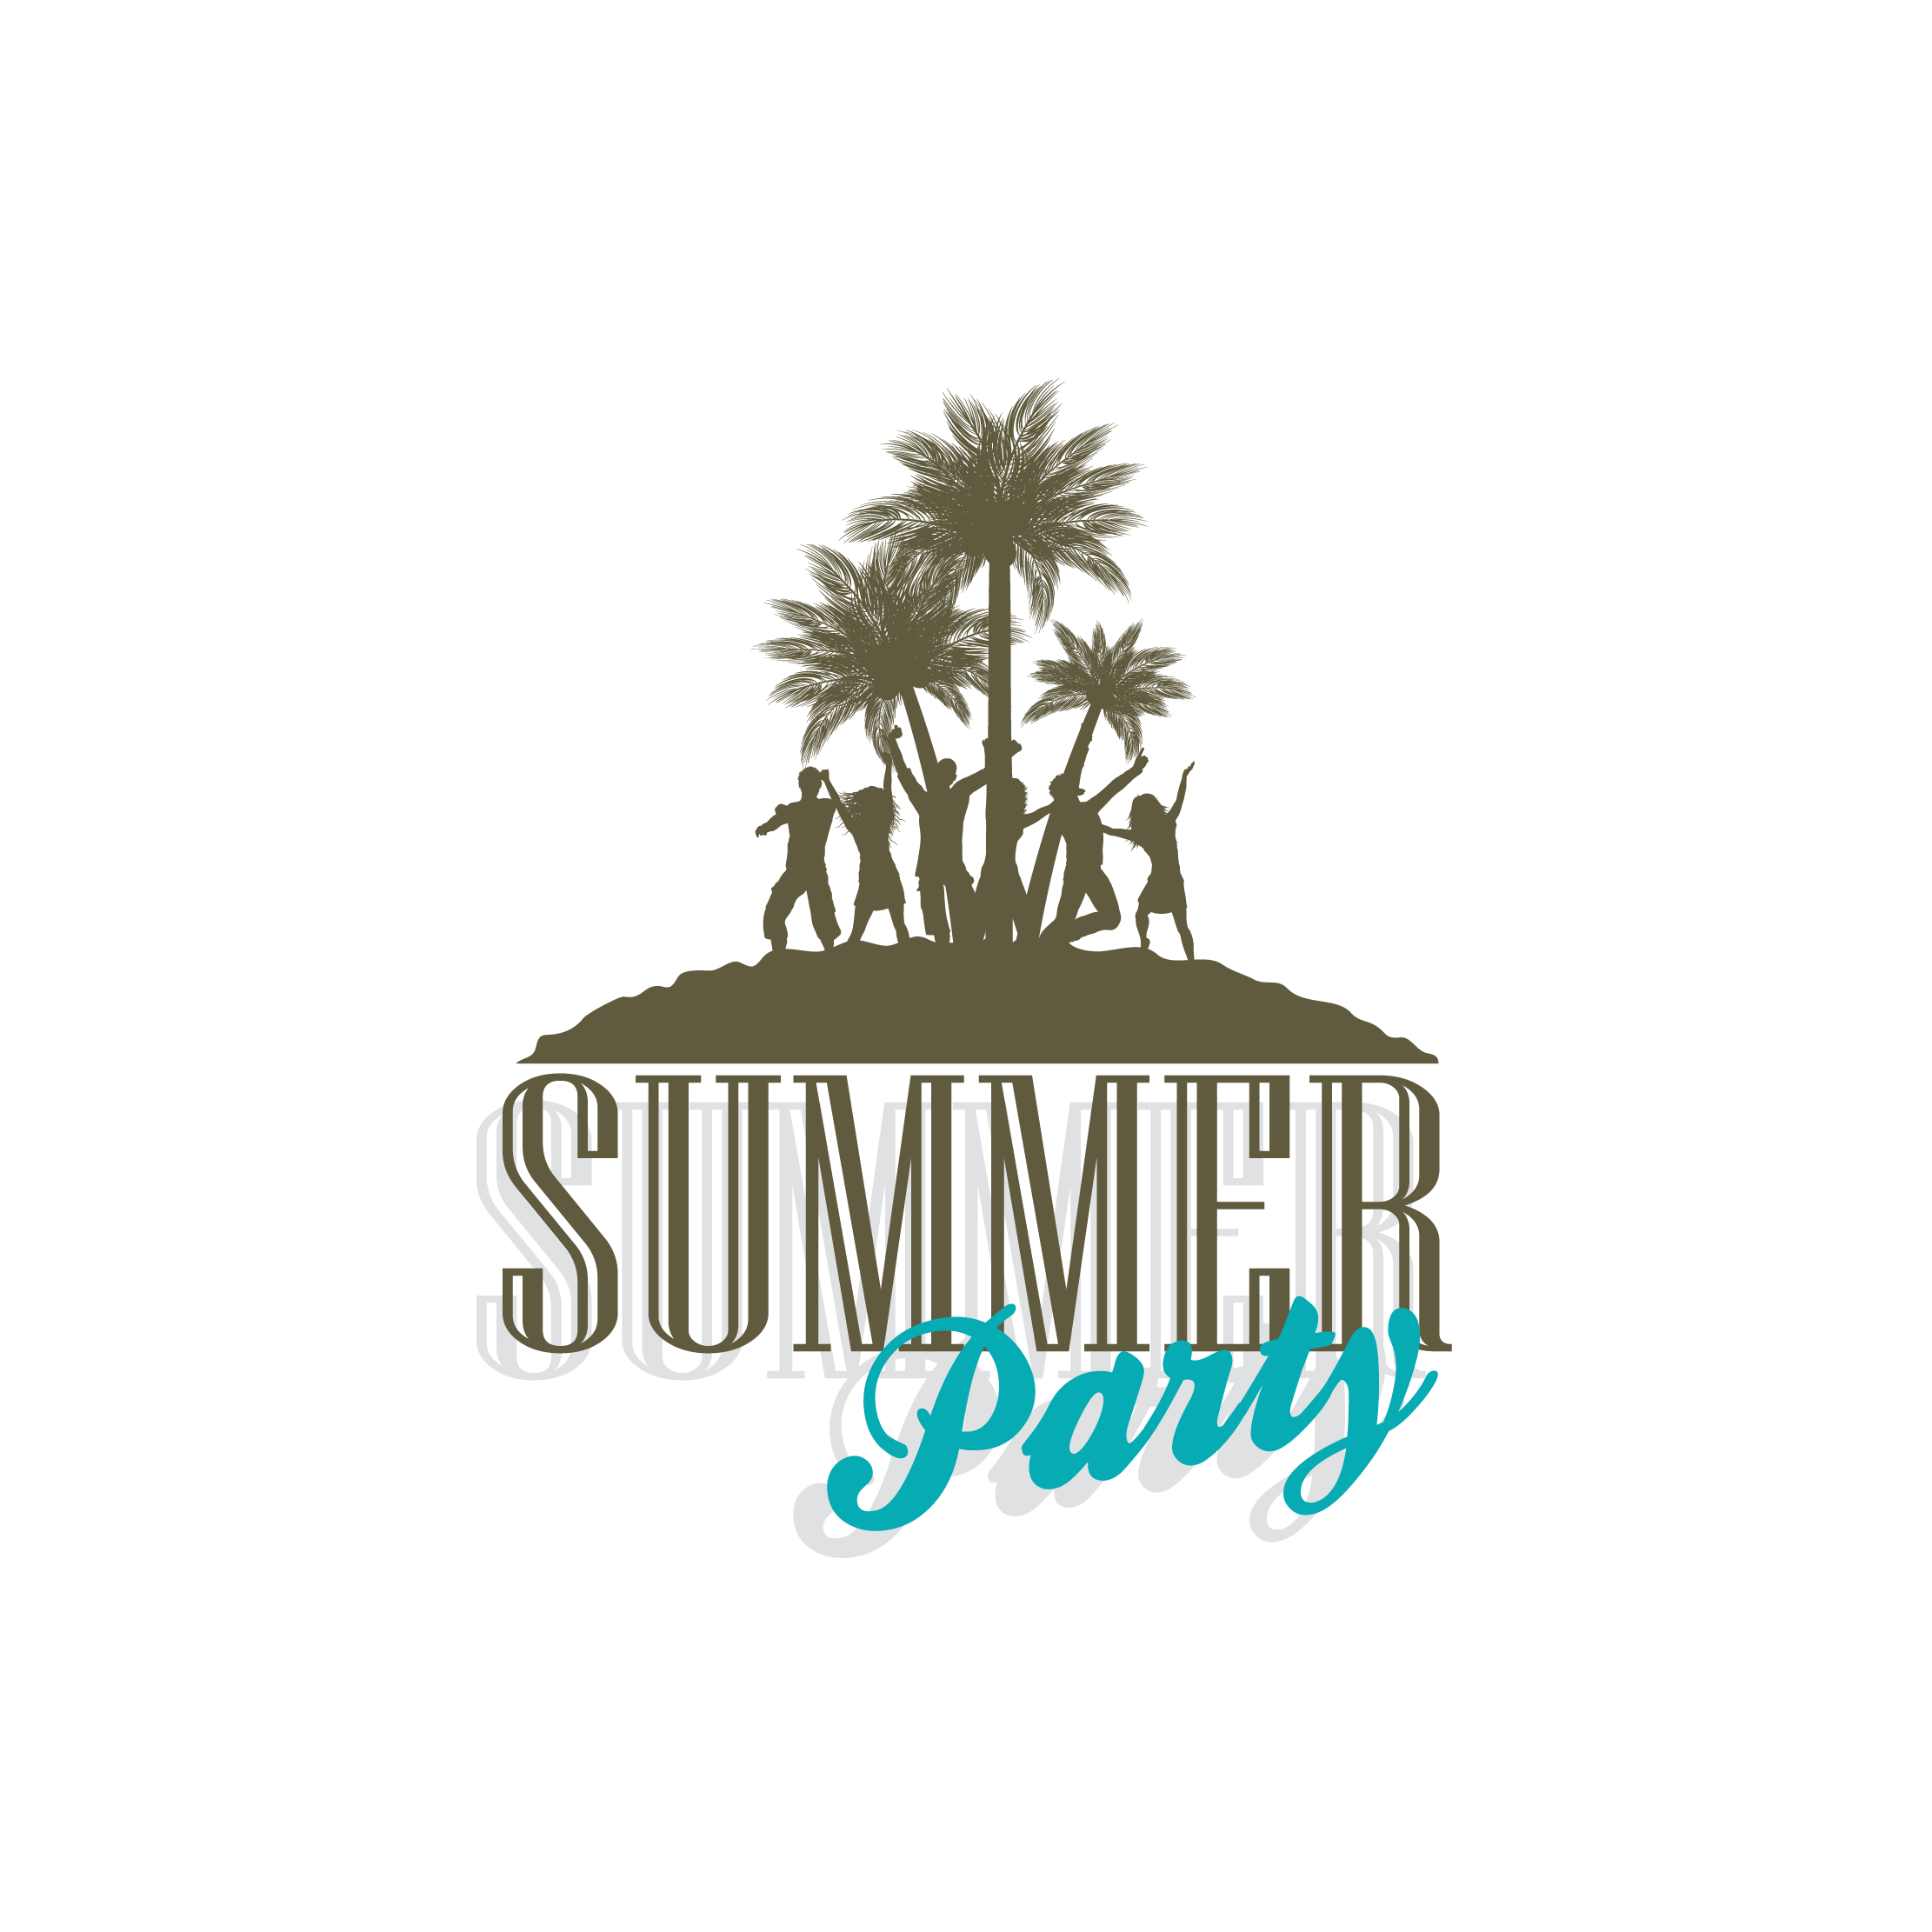 Beach tree clipart clip transparent library Party Silhouette Clip art - Summer beach silhouette 2222*2222 ... clip transparent library